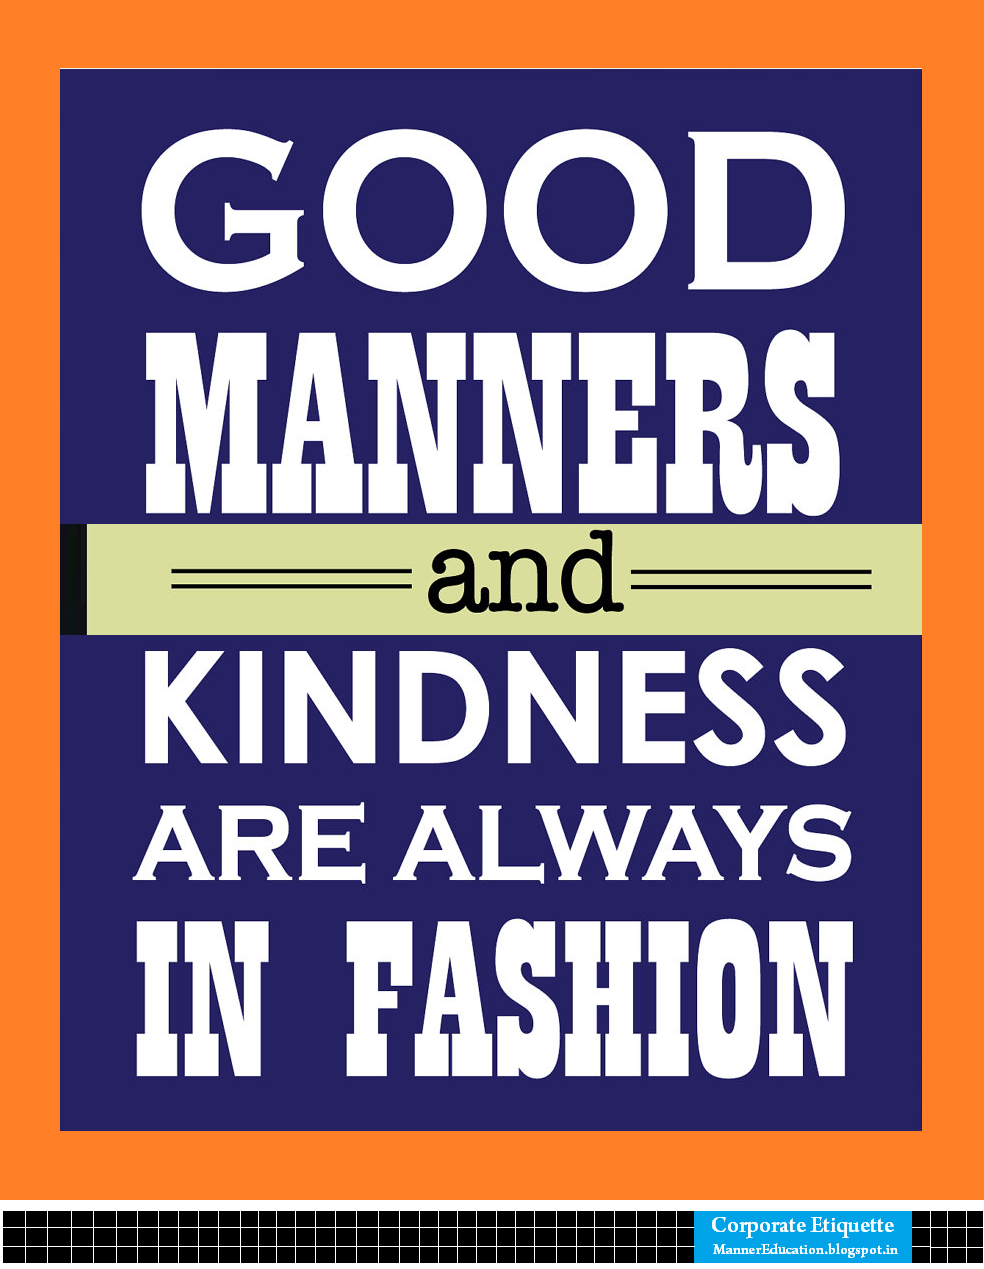 Good Manners Etiquette Good Manners in Fashion Poster